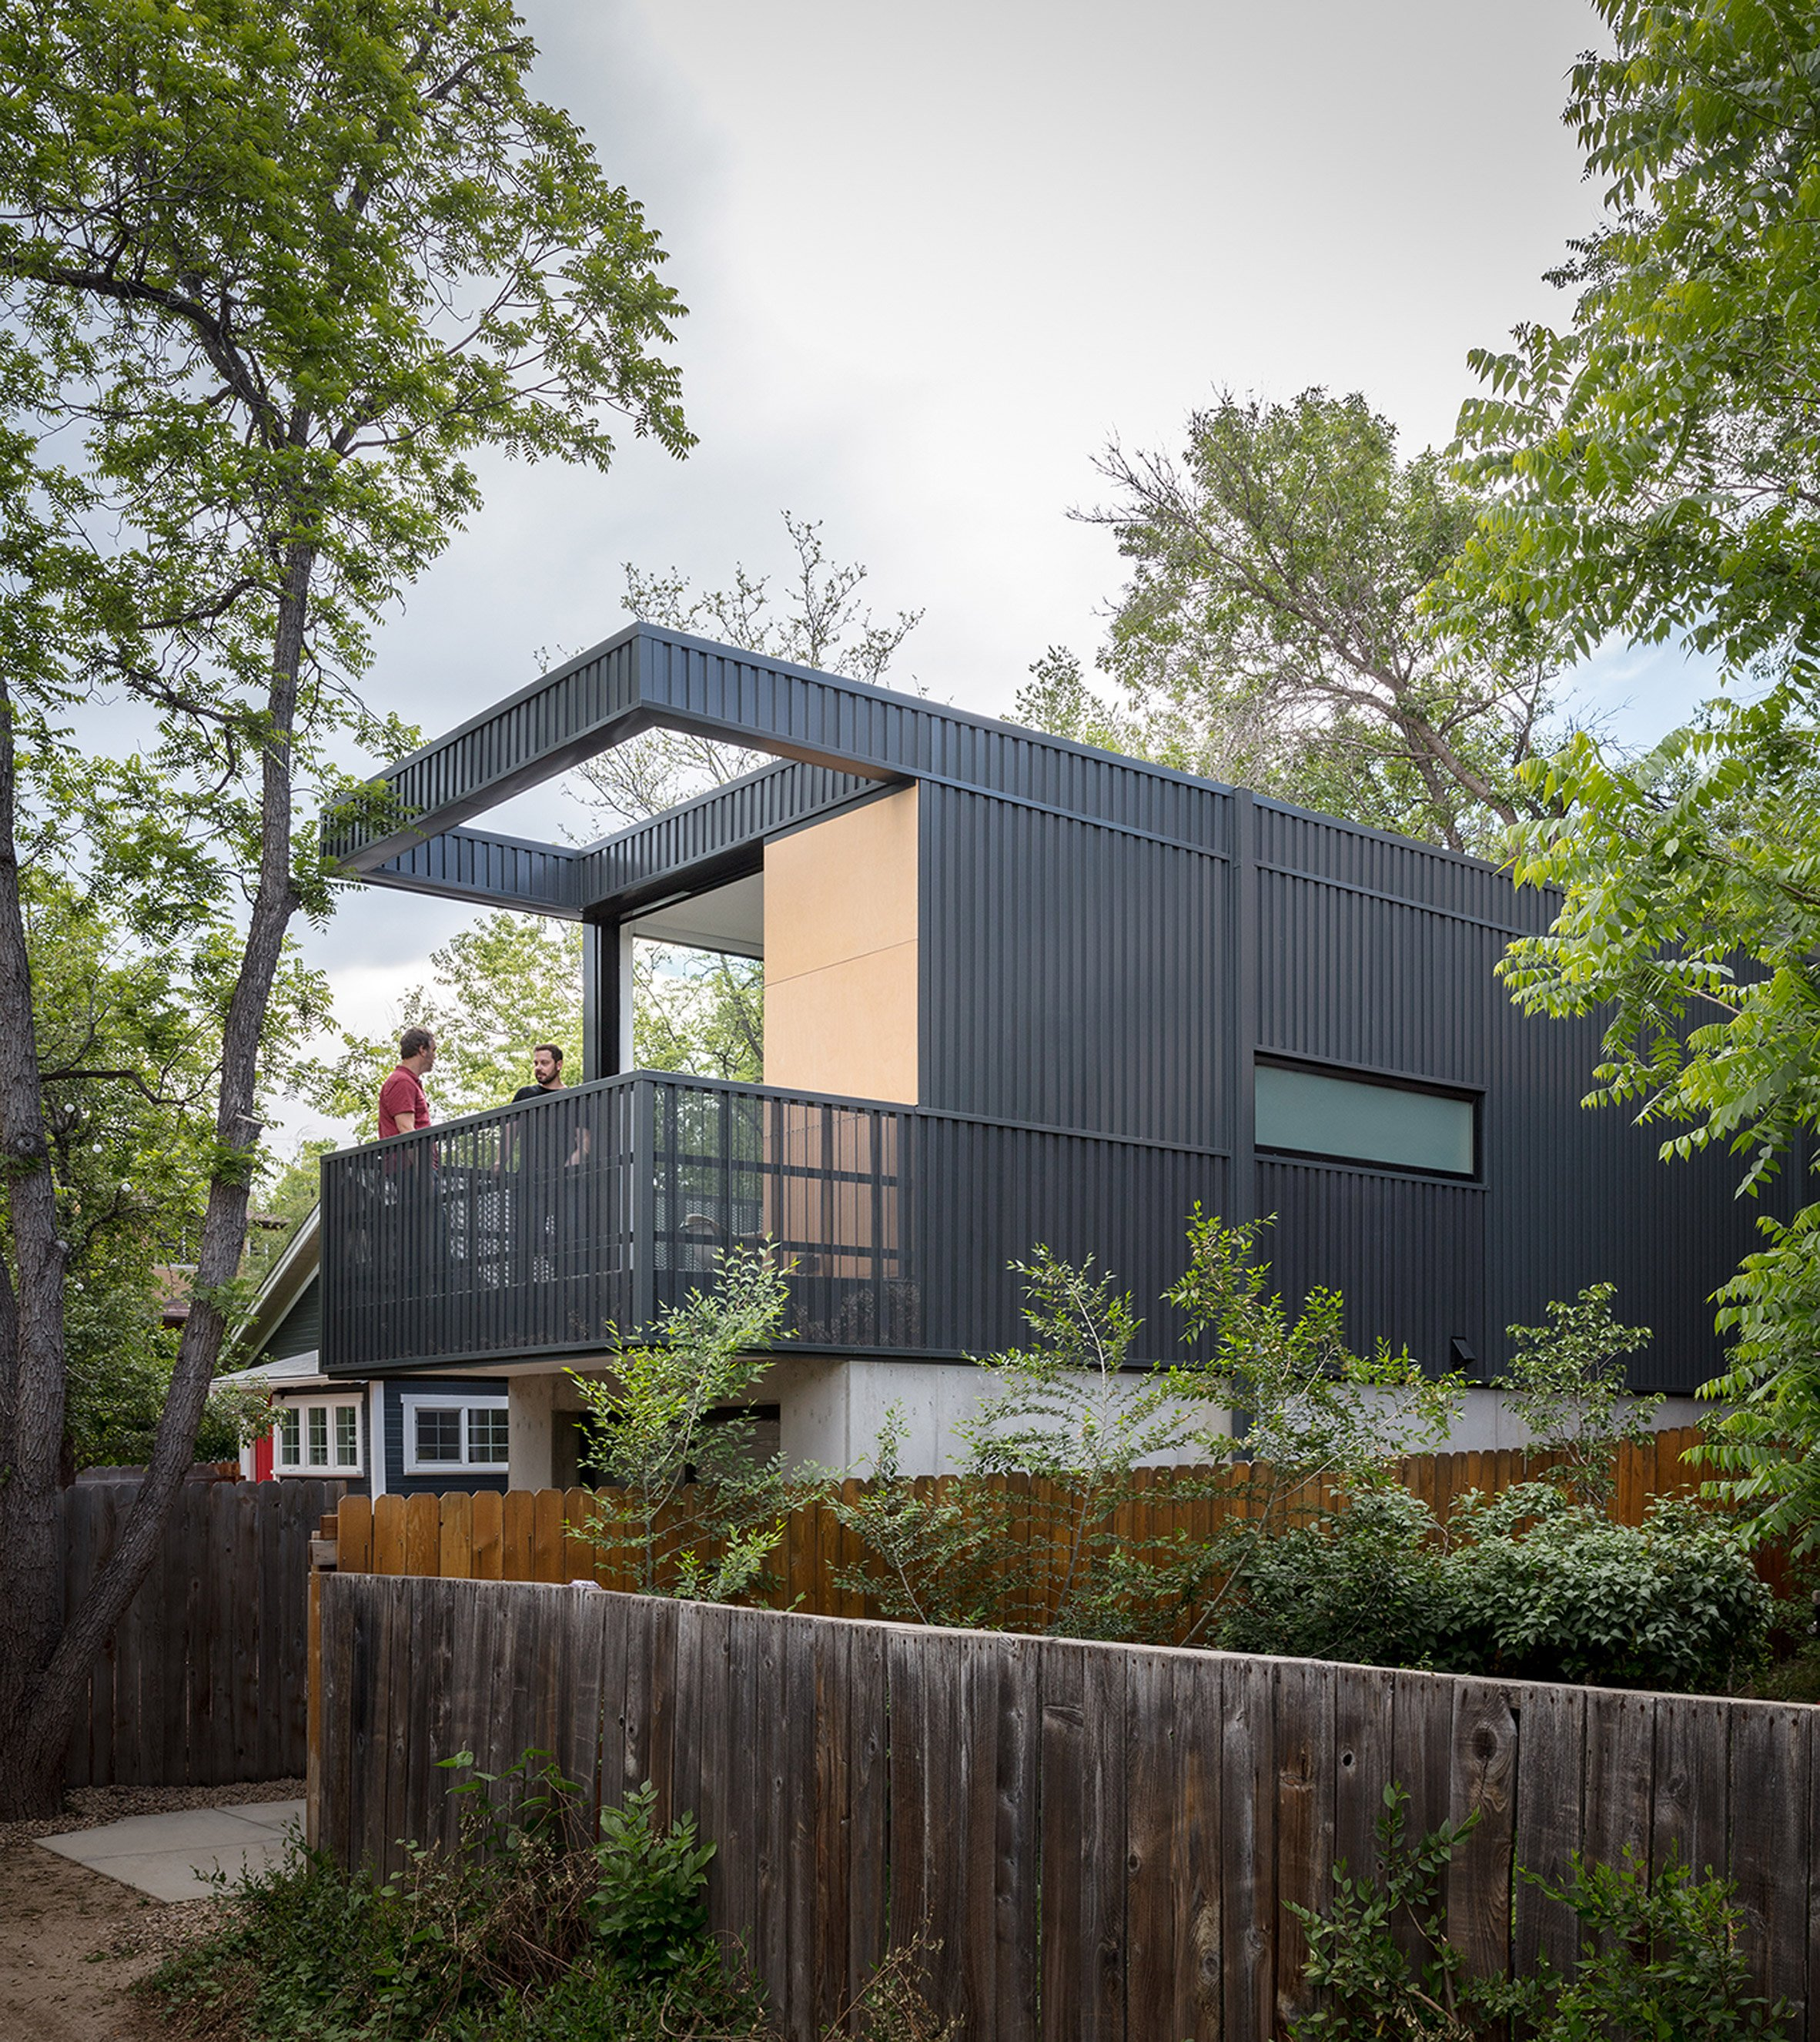 Studio B creates skinny backyard dwelling for landscape architect in Colorado